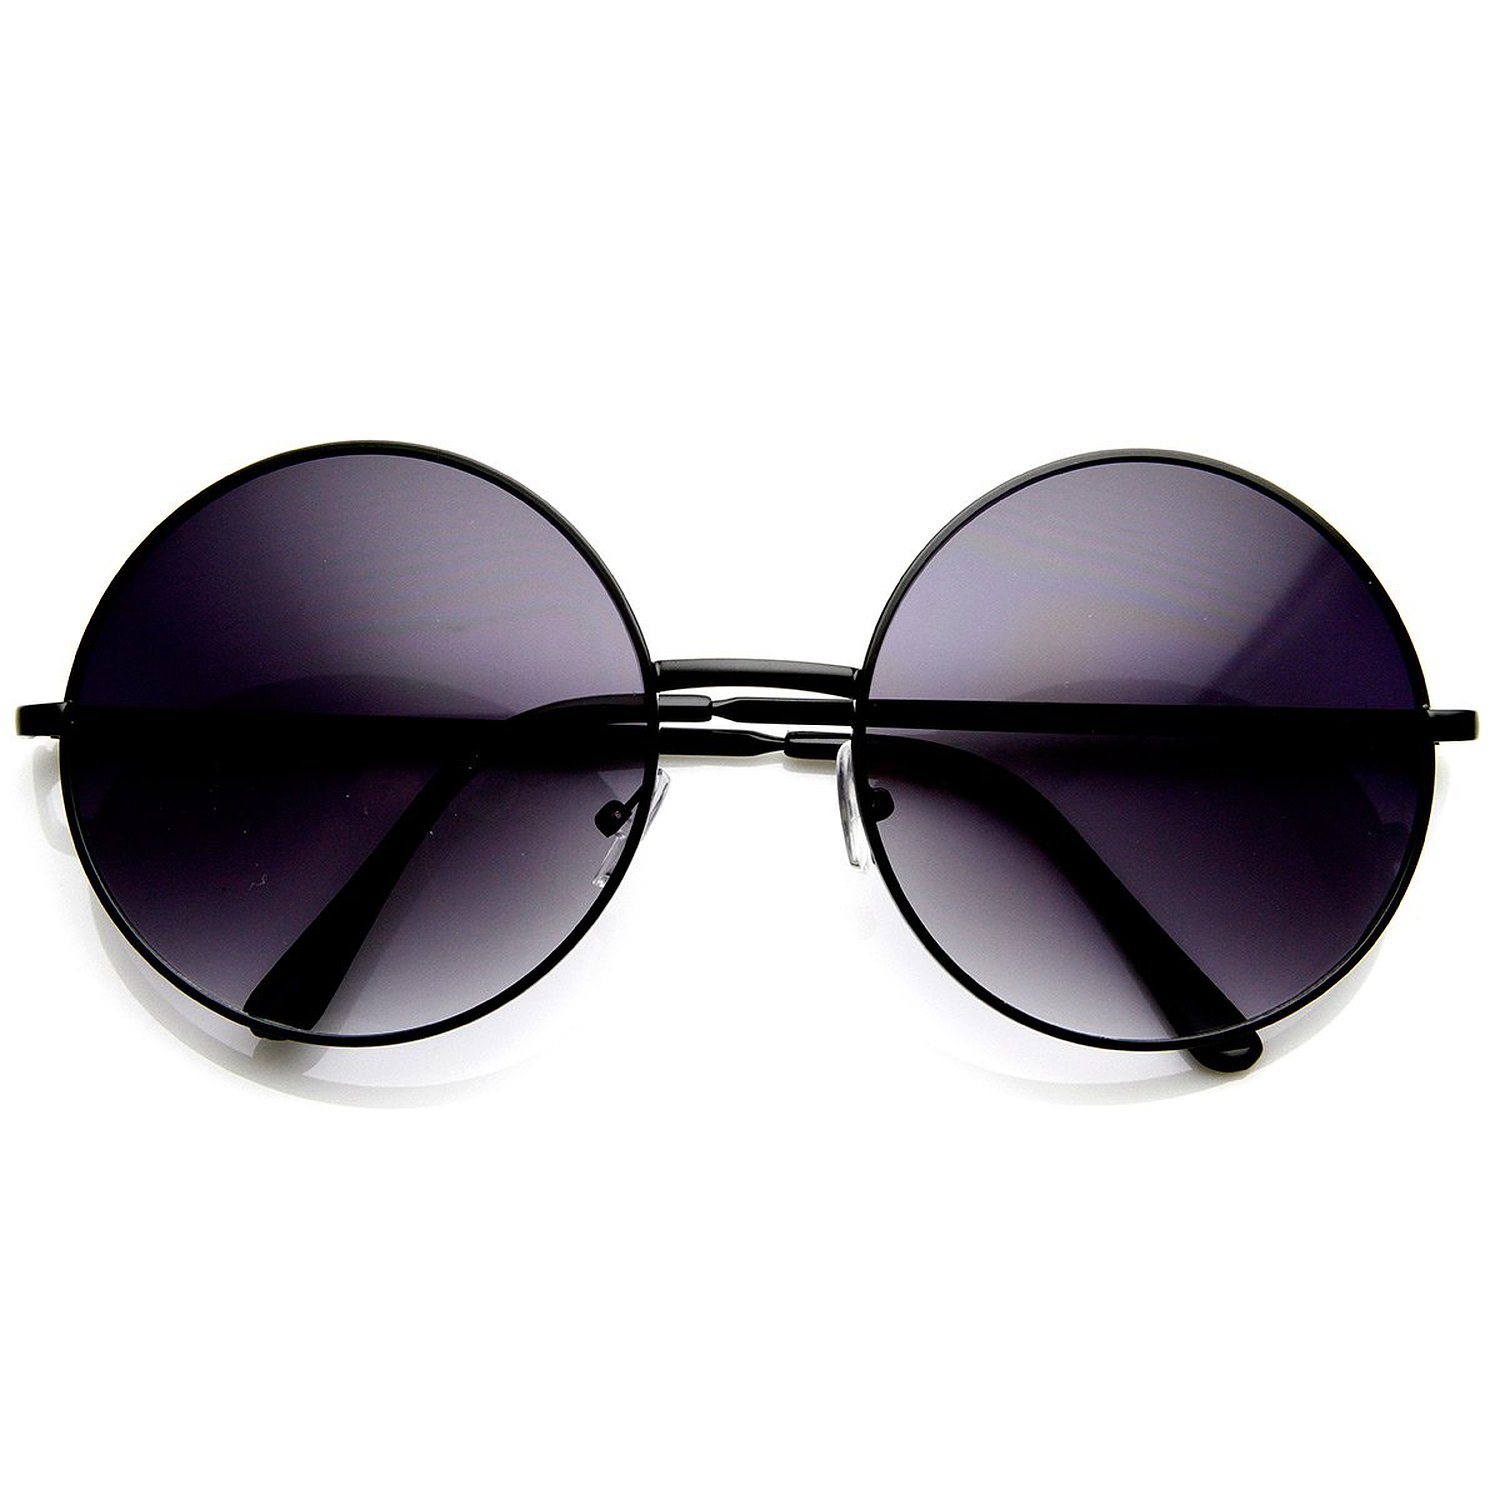 Amazon.com: Super Large Oversized Metal Round Circle Sunglasses (Black Lavender): Shoes